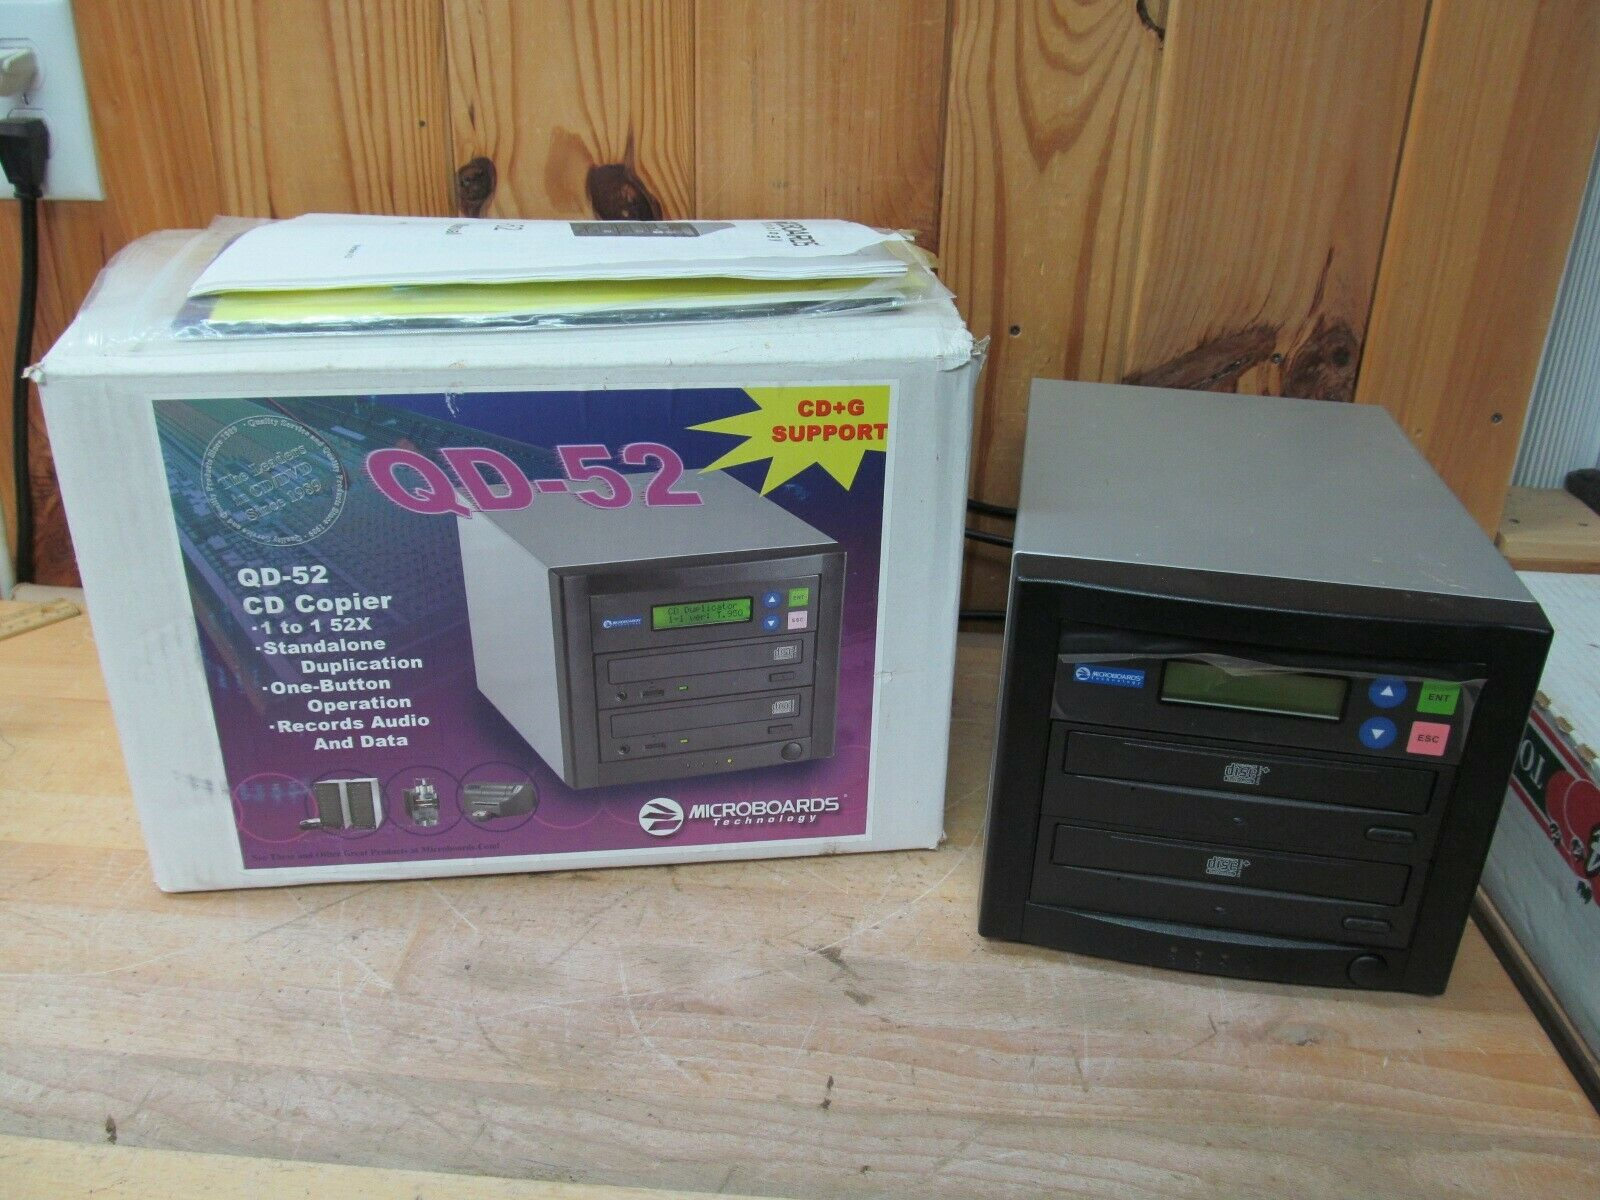 Microboards Quick Disc Qd 52 Cd R Burner For Sale Online Ebay